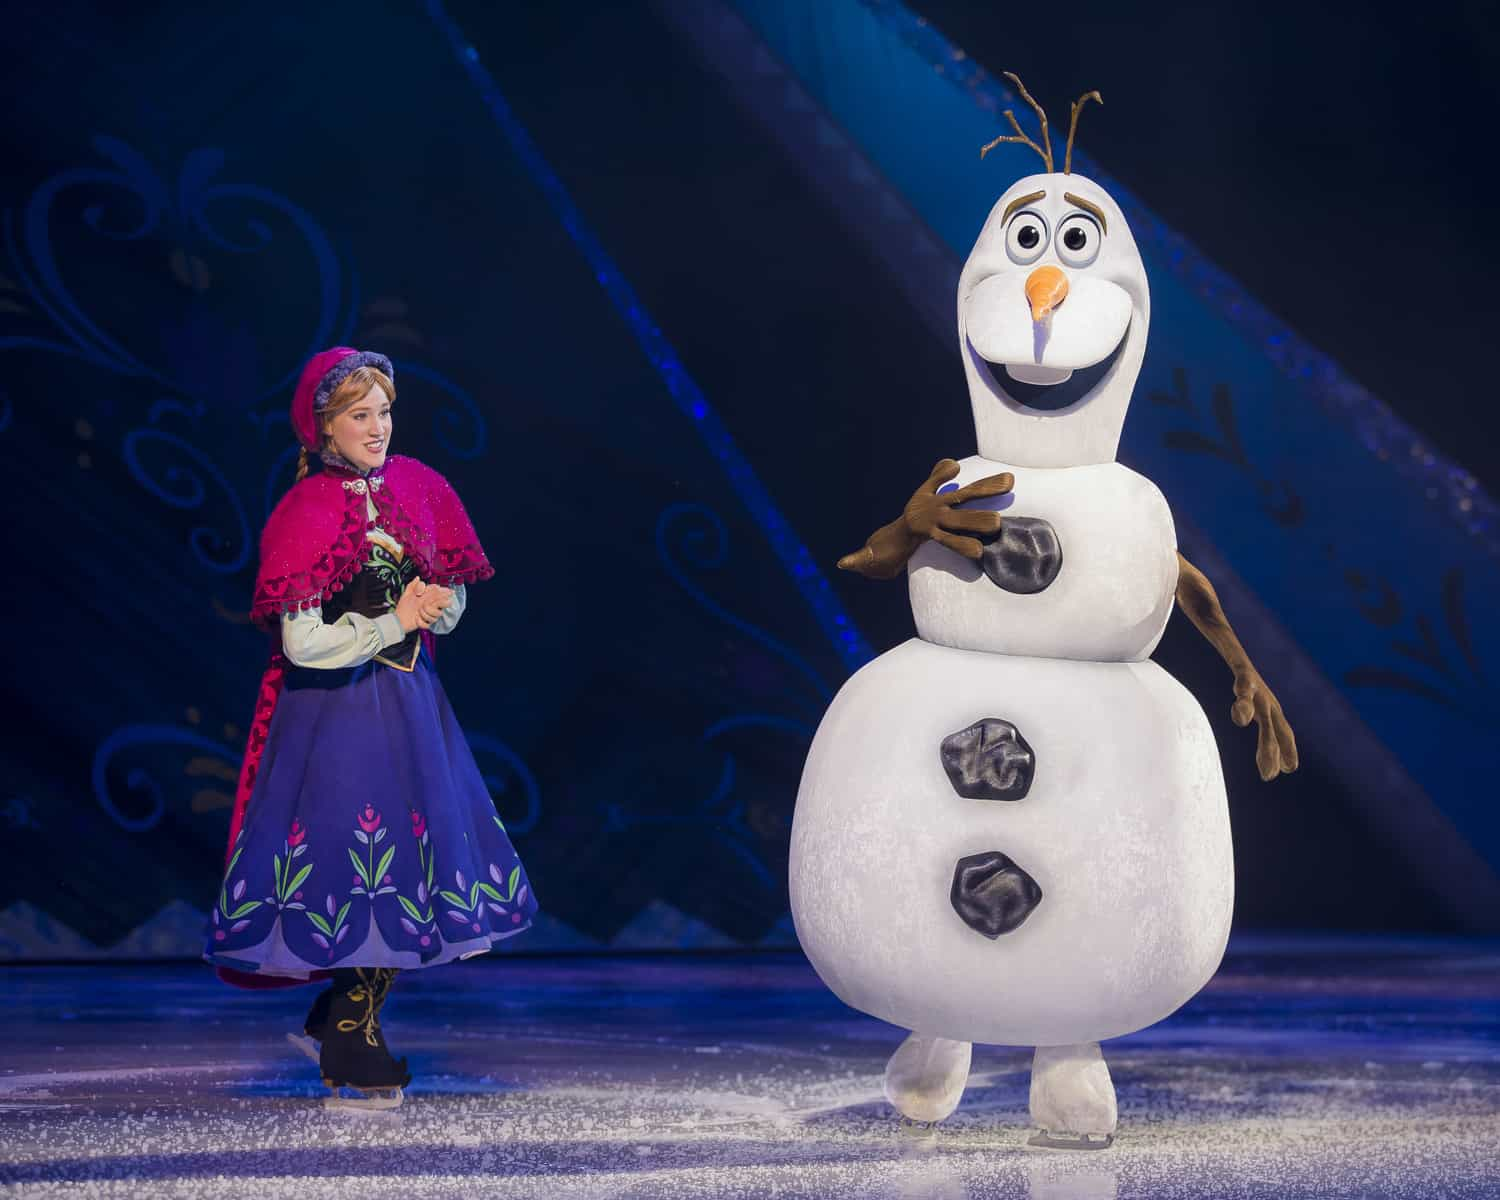 Anna and Olaf on ice skates as part of Disney on Ice Worlds of Enchantment